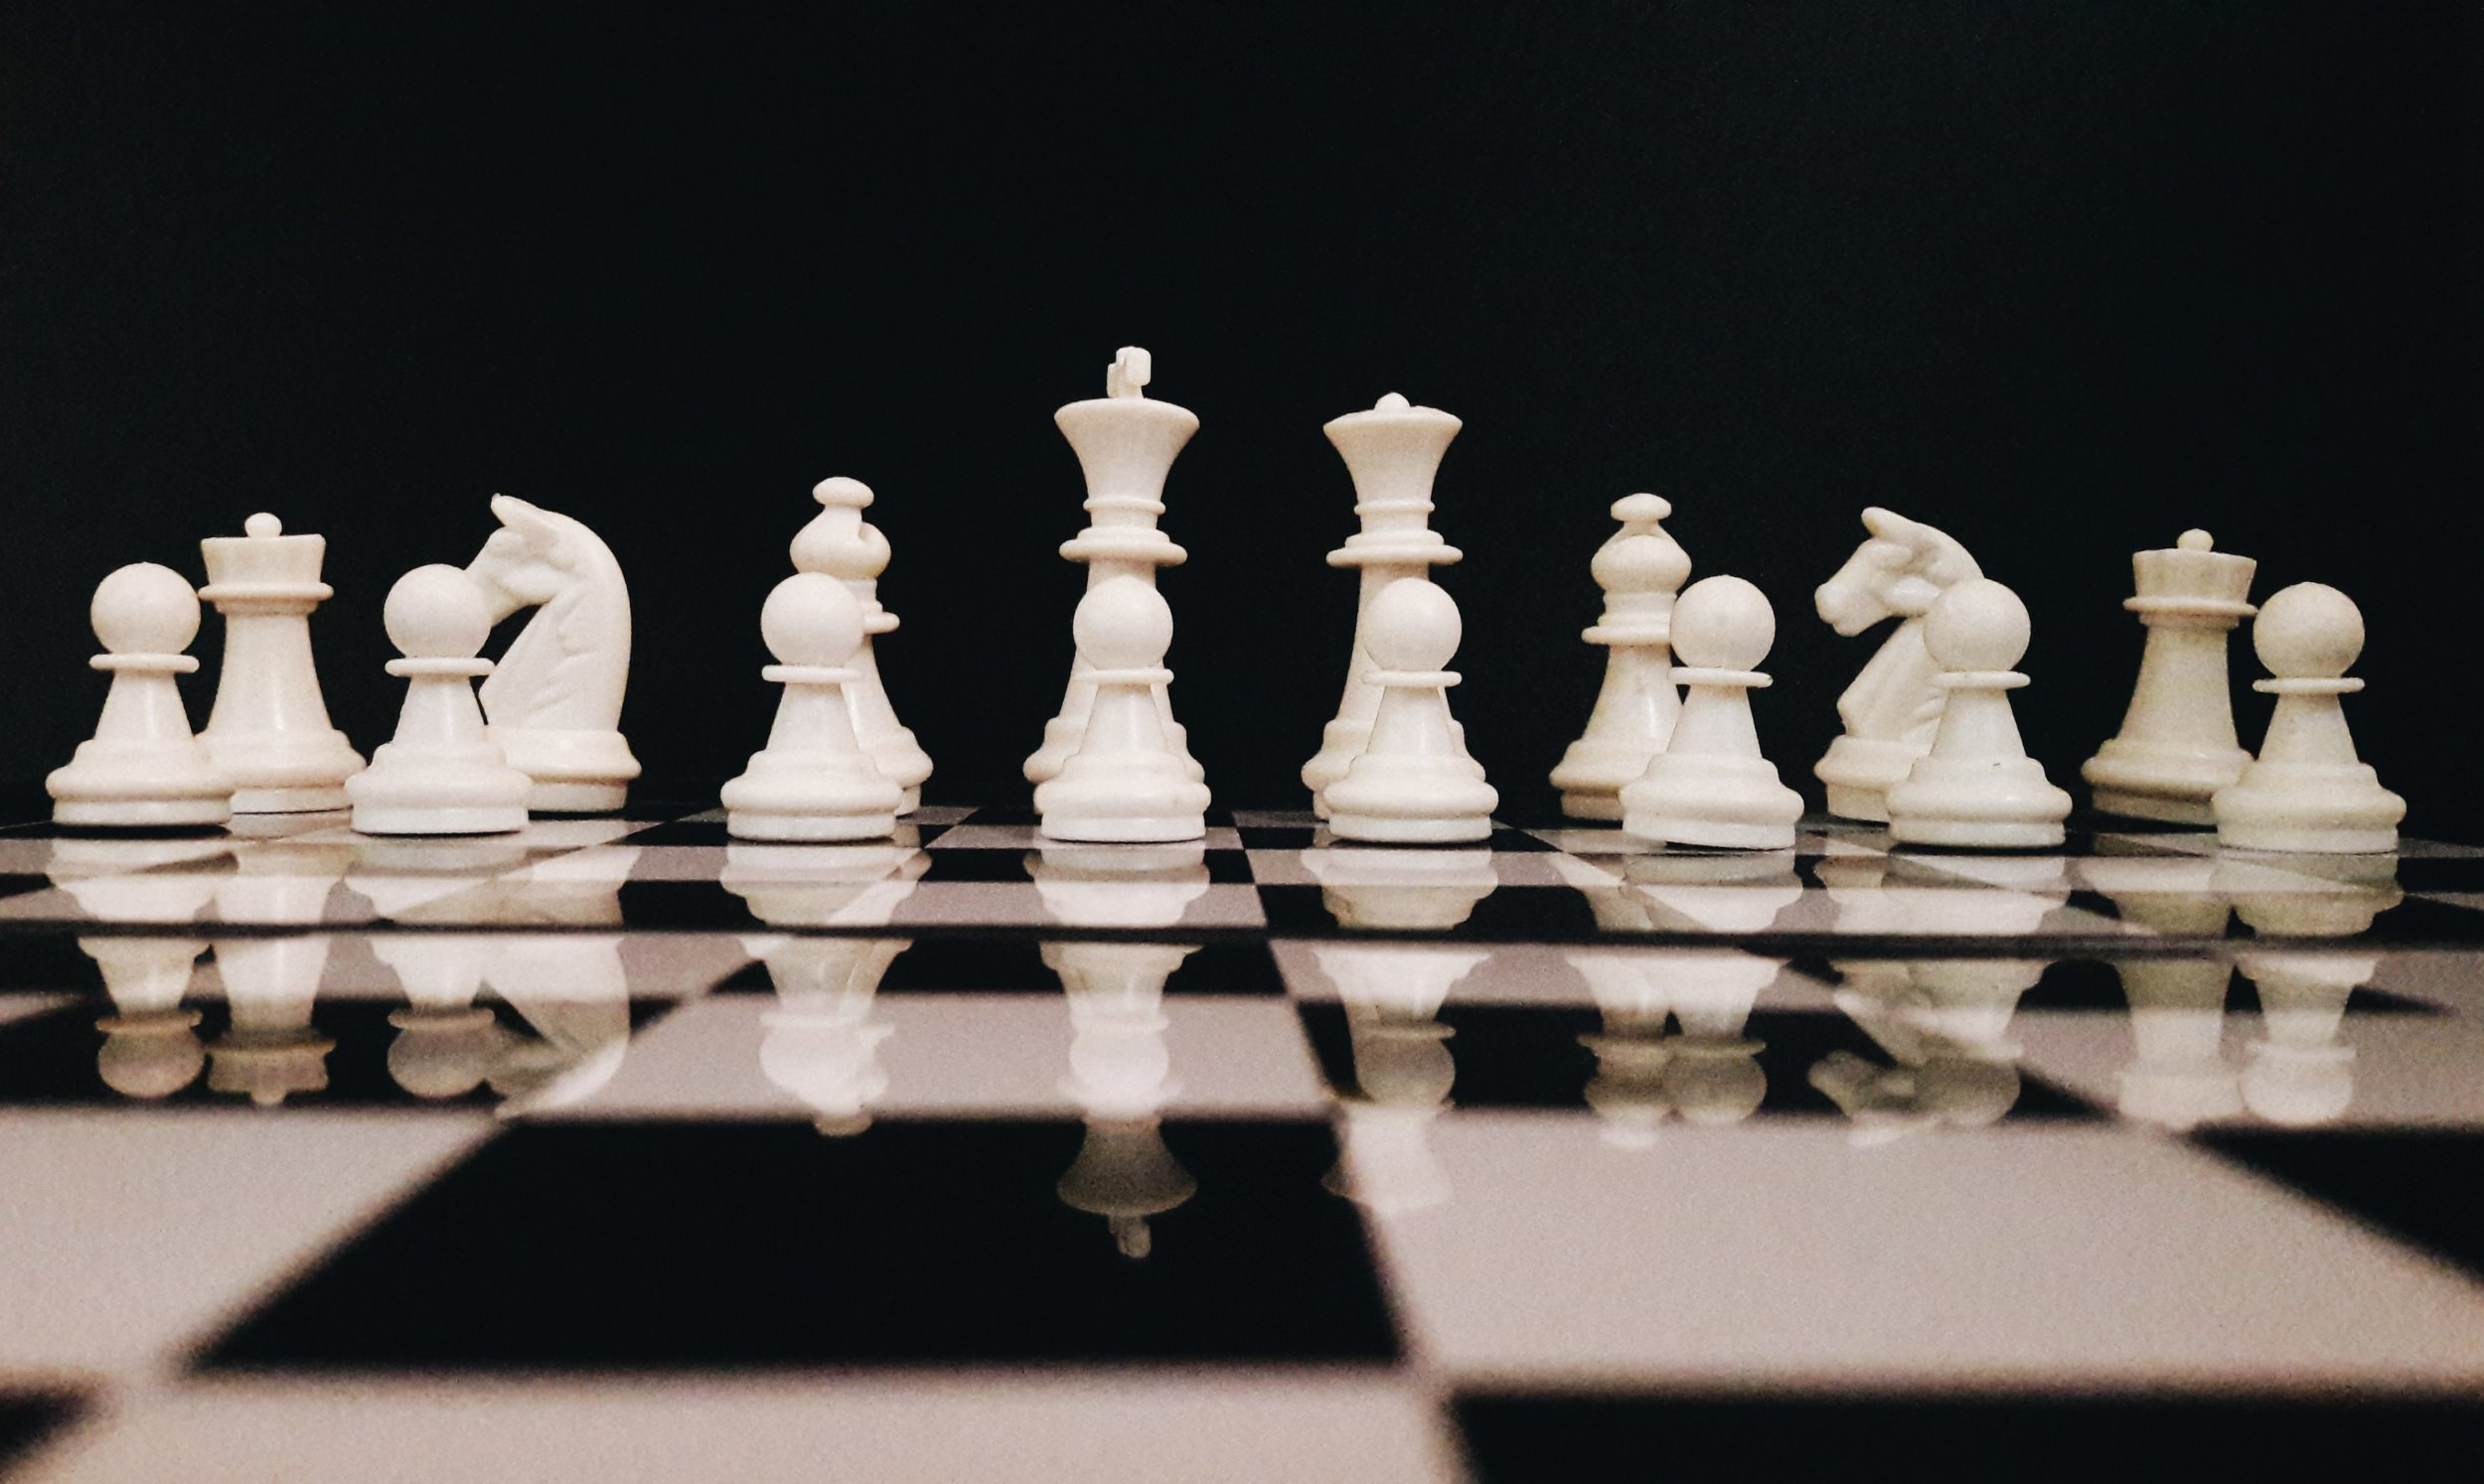 Chess Club - Fridays 1:05 – 2:05 pm for 1st – 8th gradeCost $100 for 6 weeks: $85 online before 9/15/18 deadlineInfo@chessKidz.org Registration form in office.Instructor: Gabriel Arenas 775-772-1496Dates 9/20, 9/27, 10/4, 10/11, 10/18, 11/1